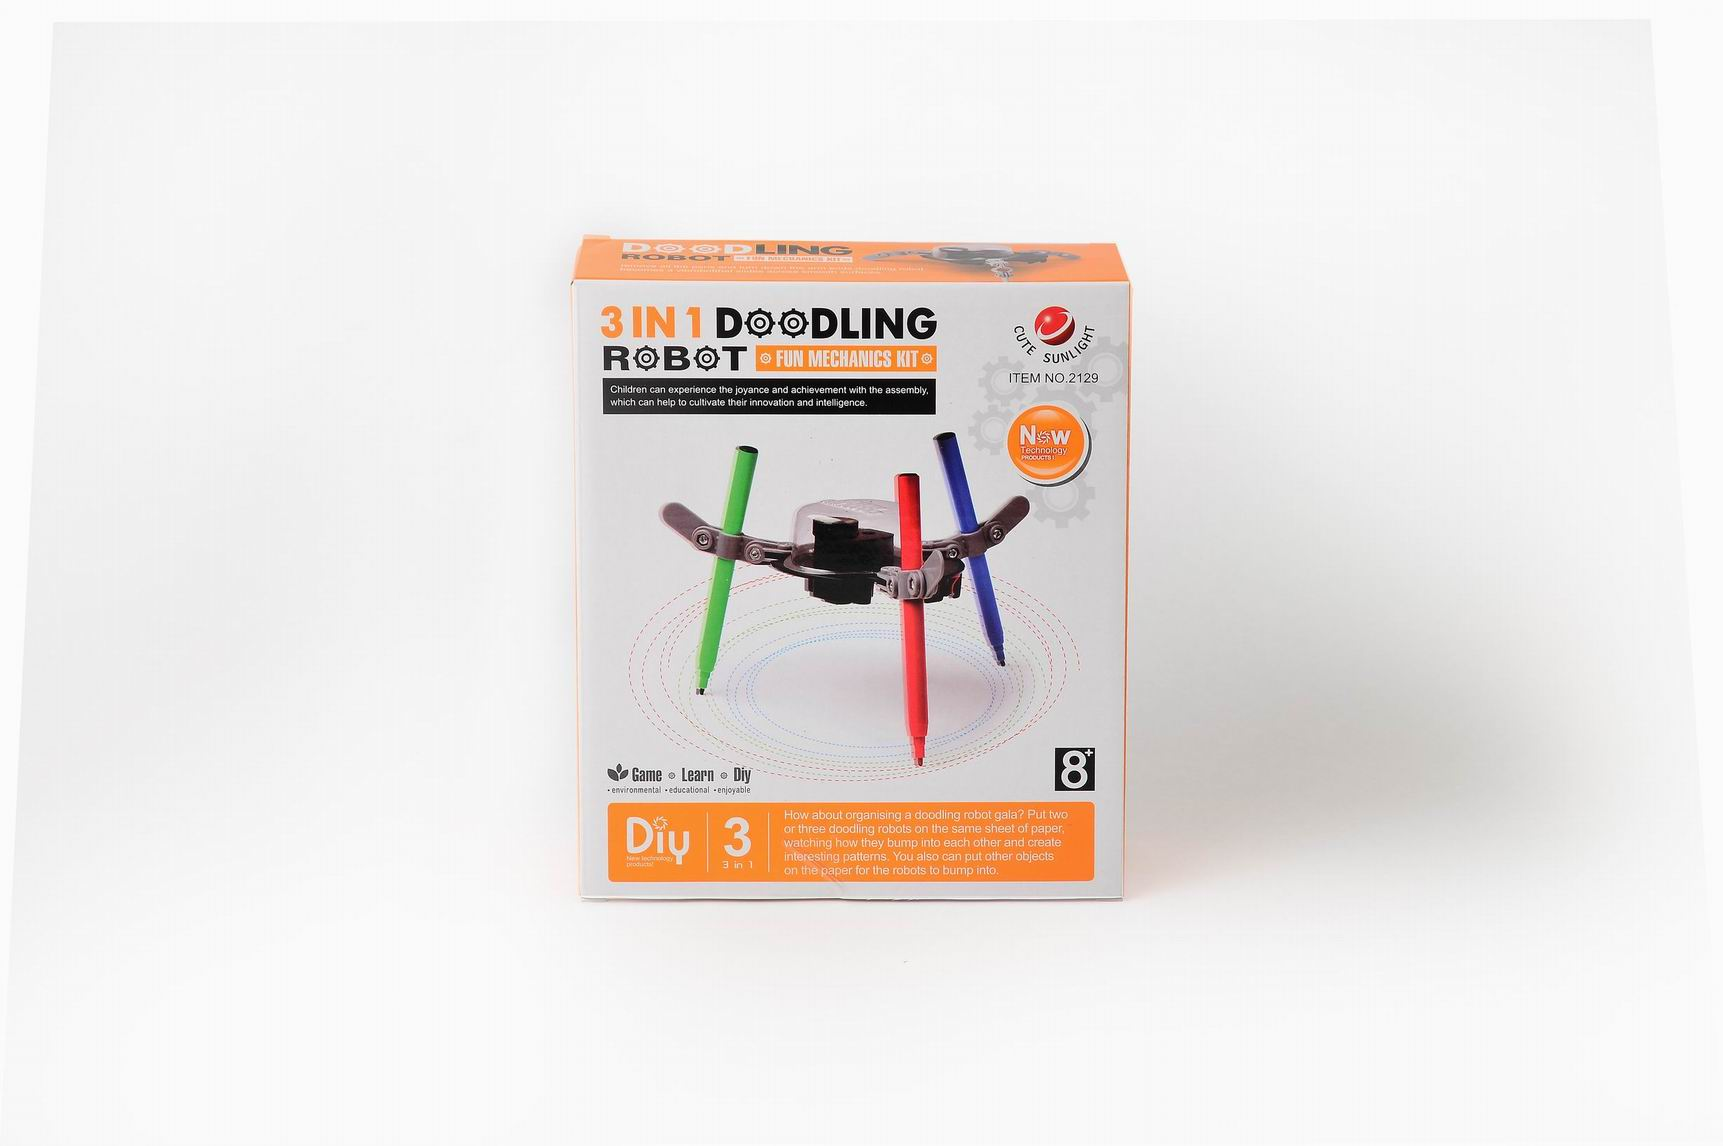 3 in 1 Doodling Robot